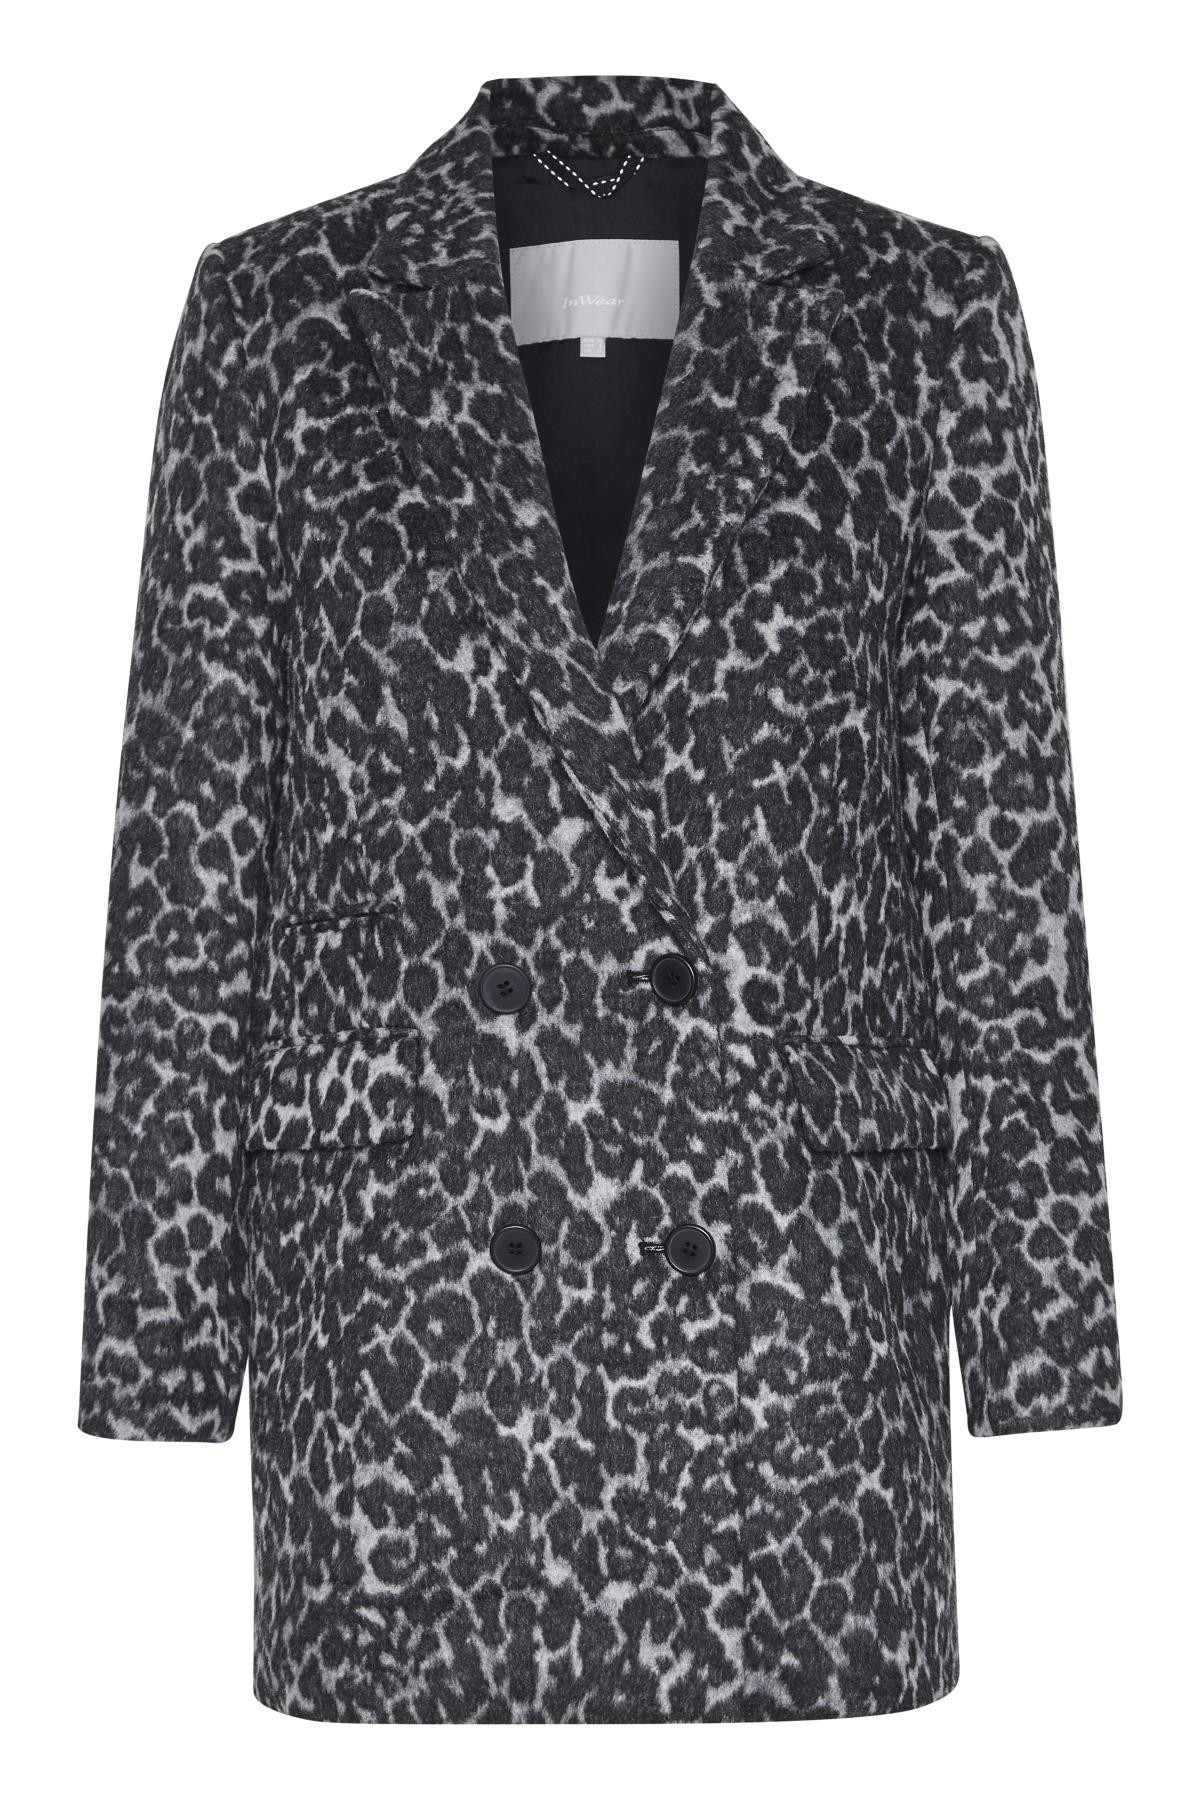 Image of   InWear GIOVANNA BLAZER 30103438 (Leopard Non-color 11367, 32)